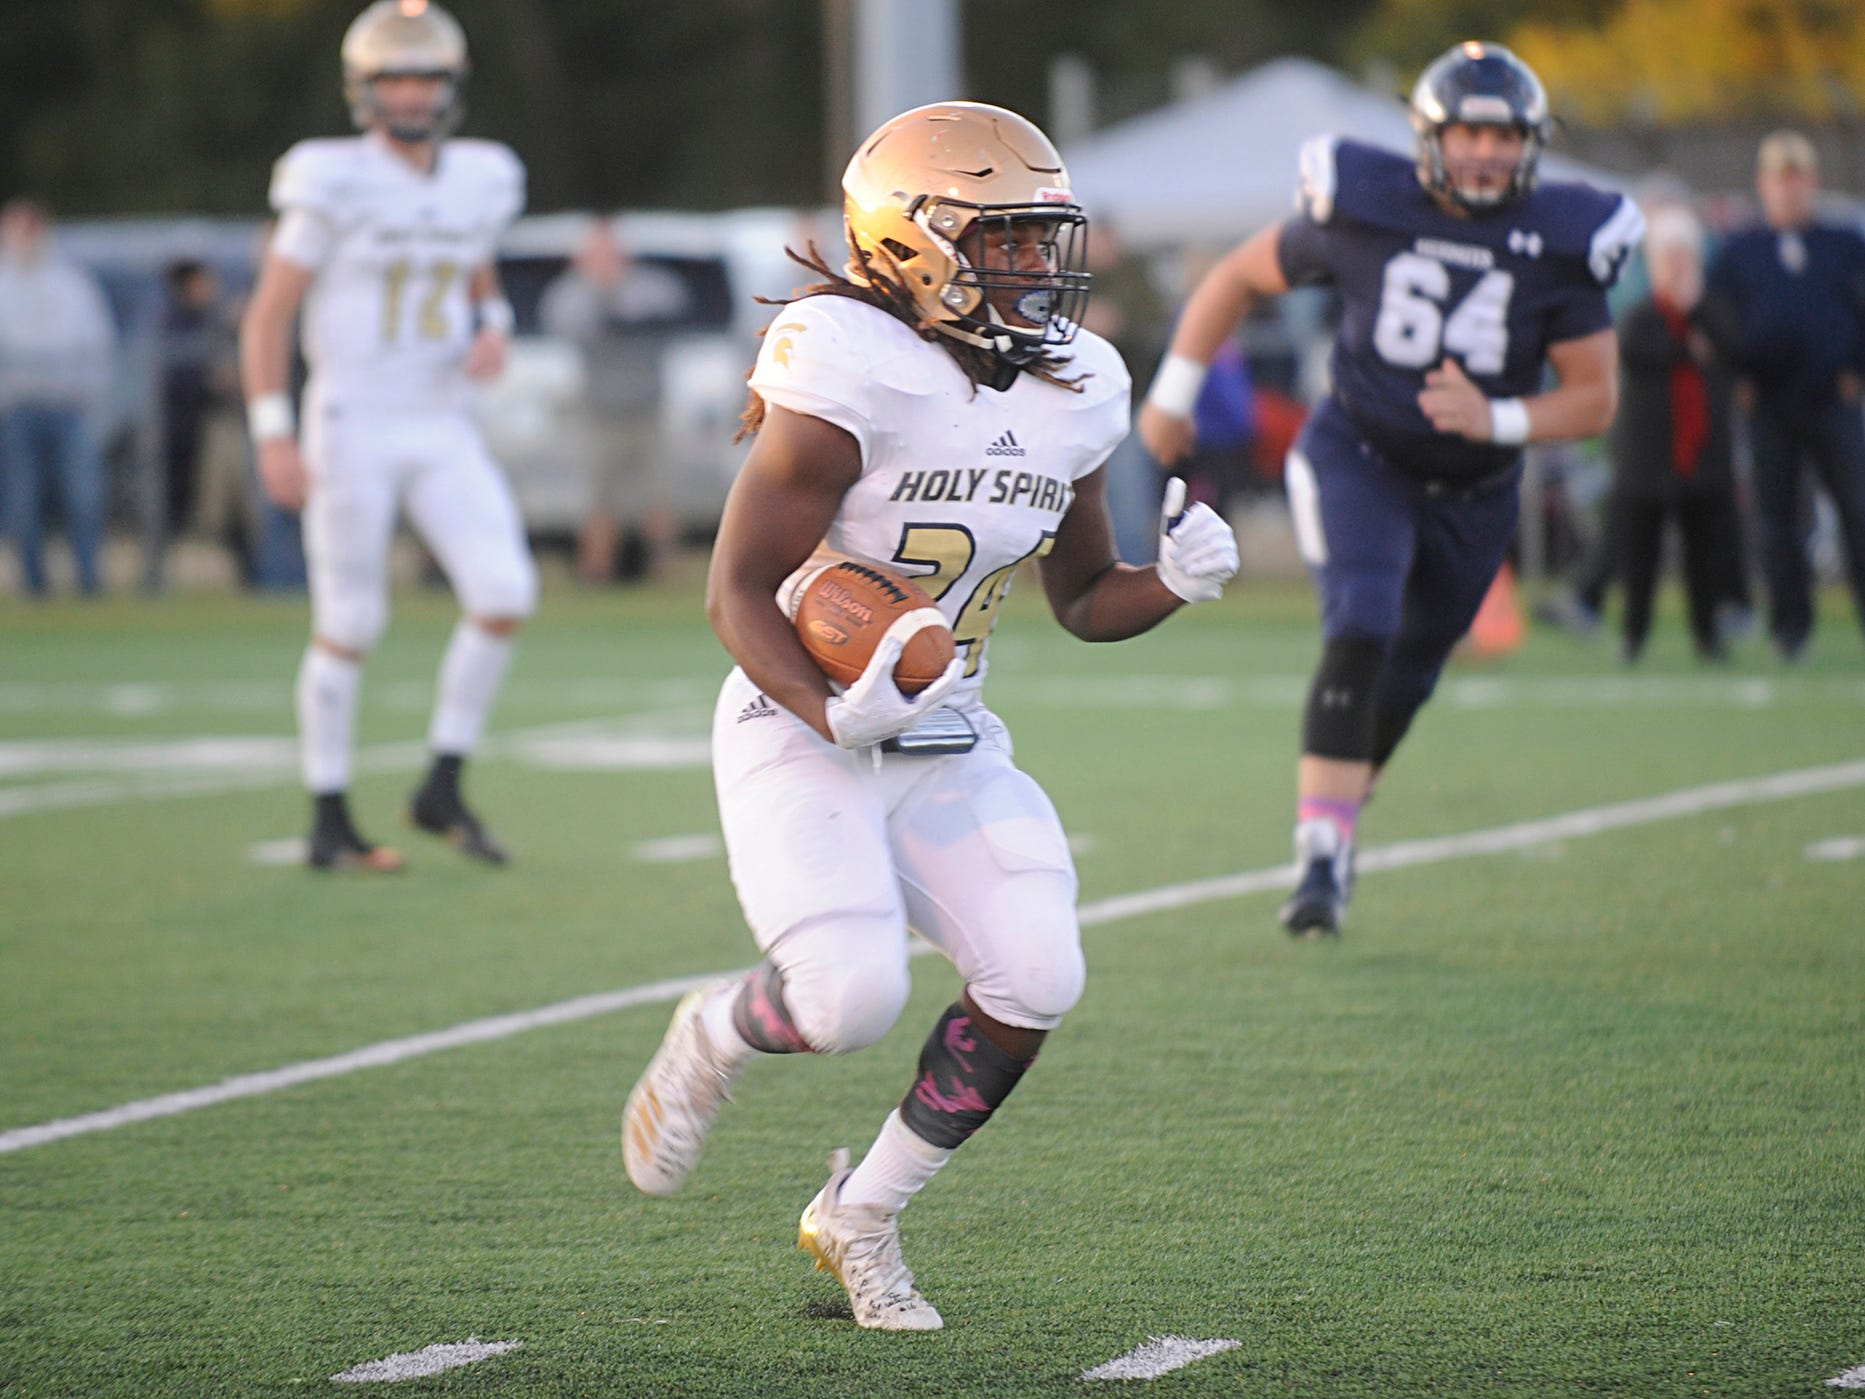 Holy Spirit's E'lijah Gray runs for a gain against St. Augustine. The Hermits topped the Spartans, 27-14 in Richland on Friday, October 12, 2018.